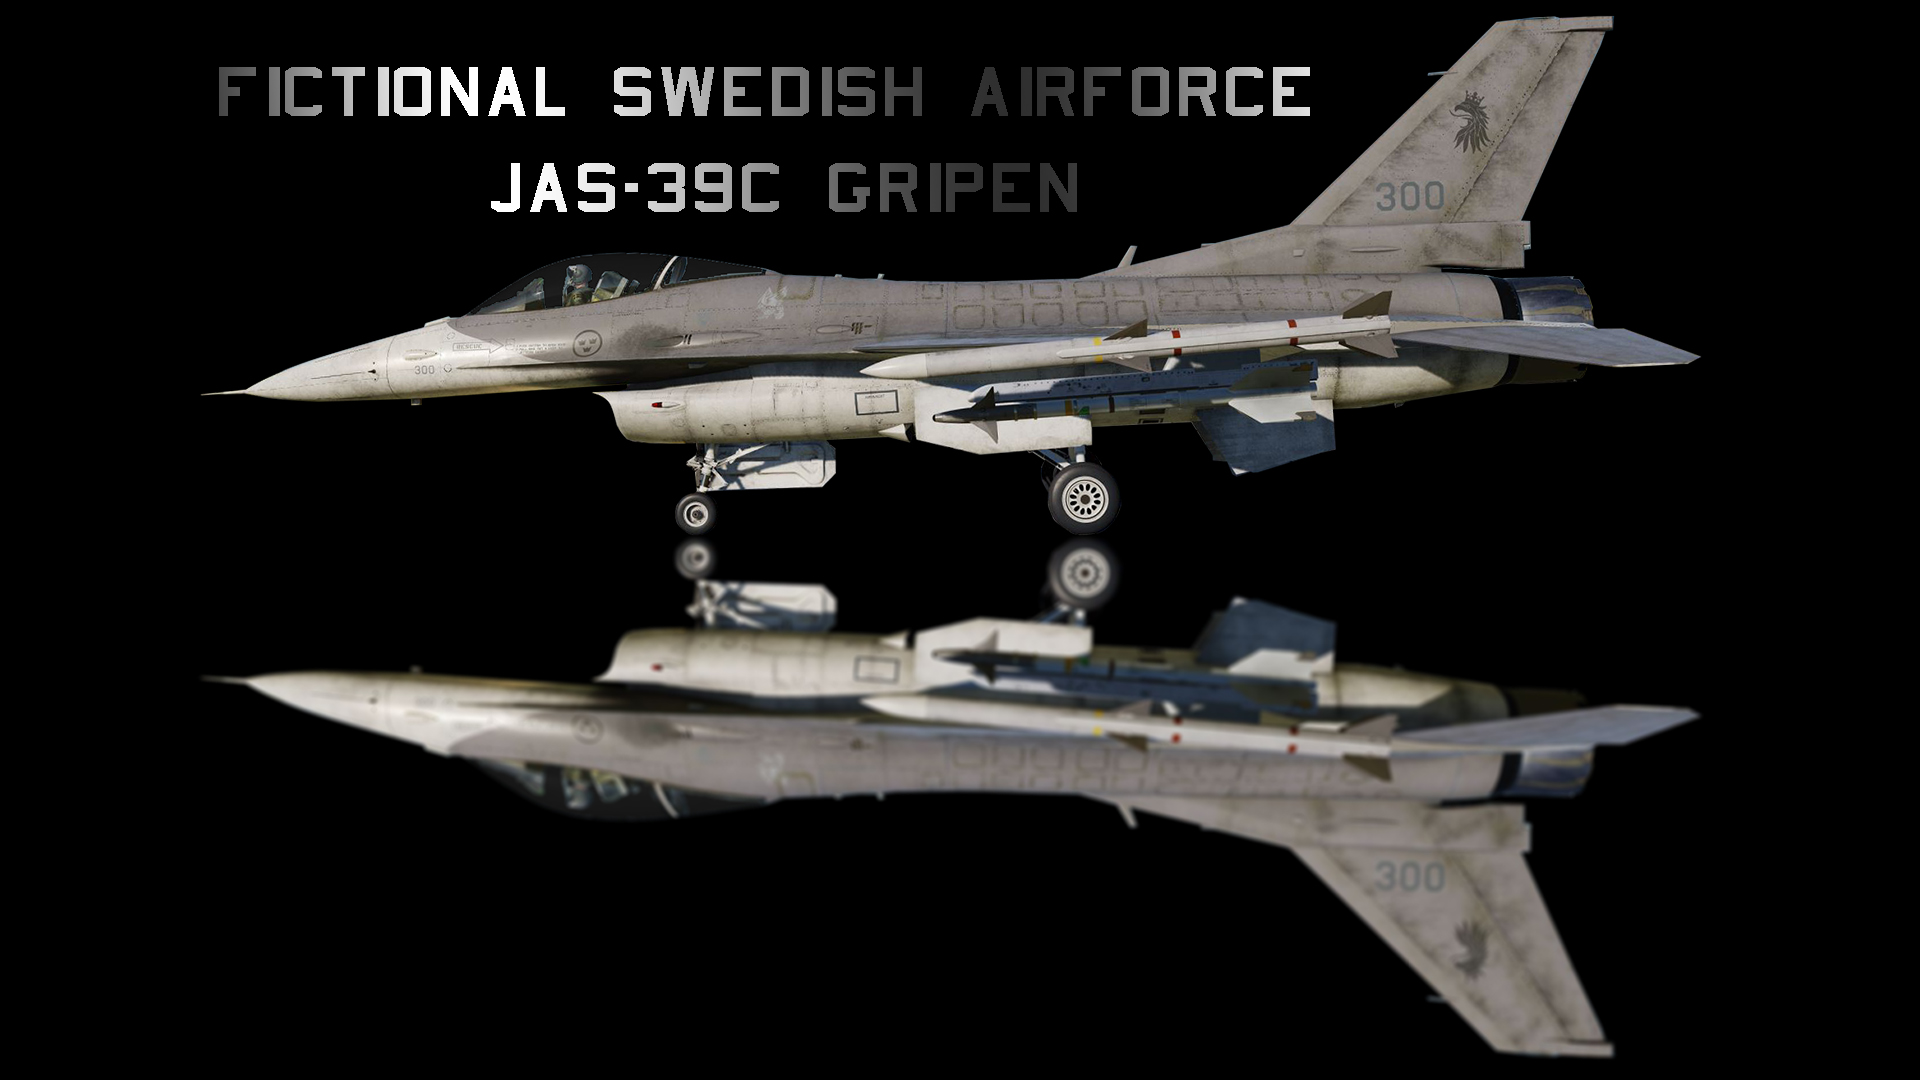 Fictional Swedish Airforce JAS-39C Gripen skin